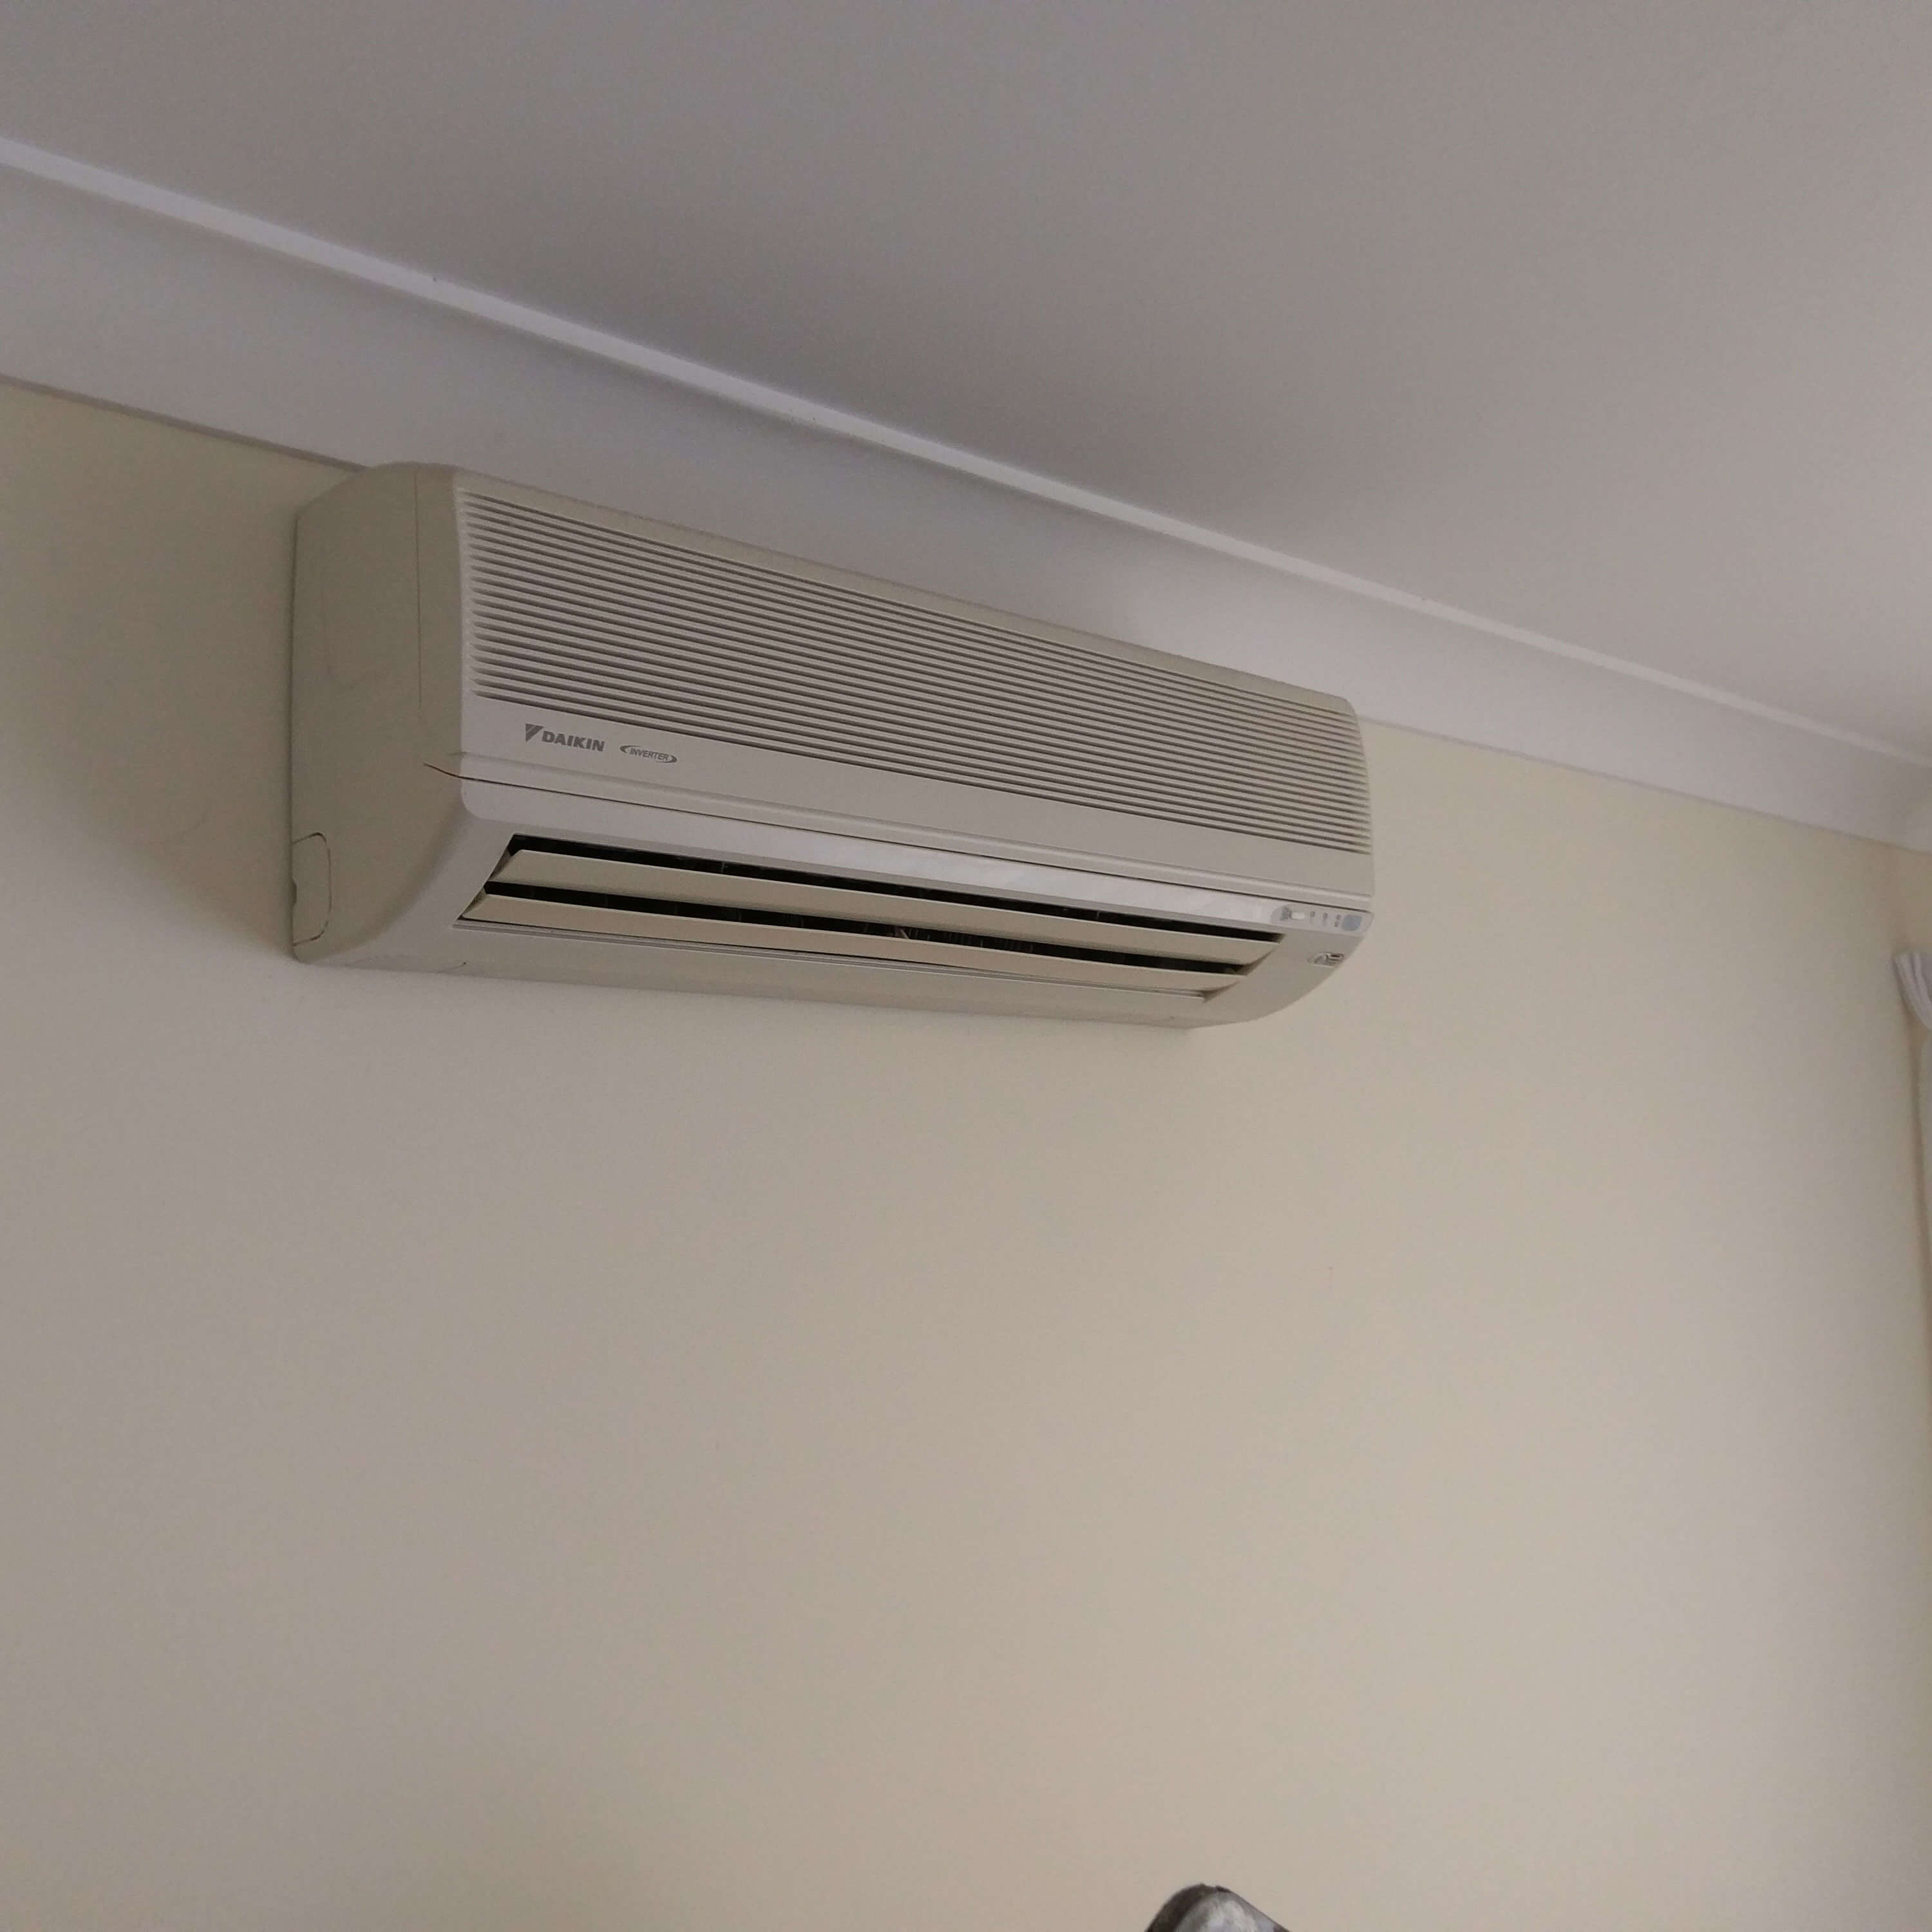 all_districts-air-conditioning-hervey-bay-sales-gallery-image-5